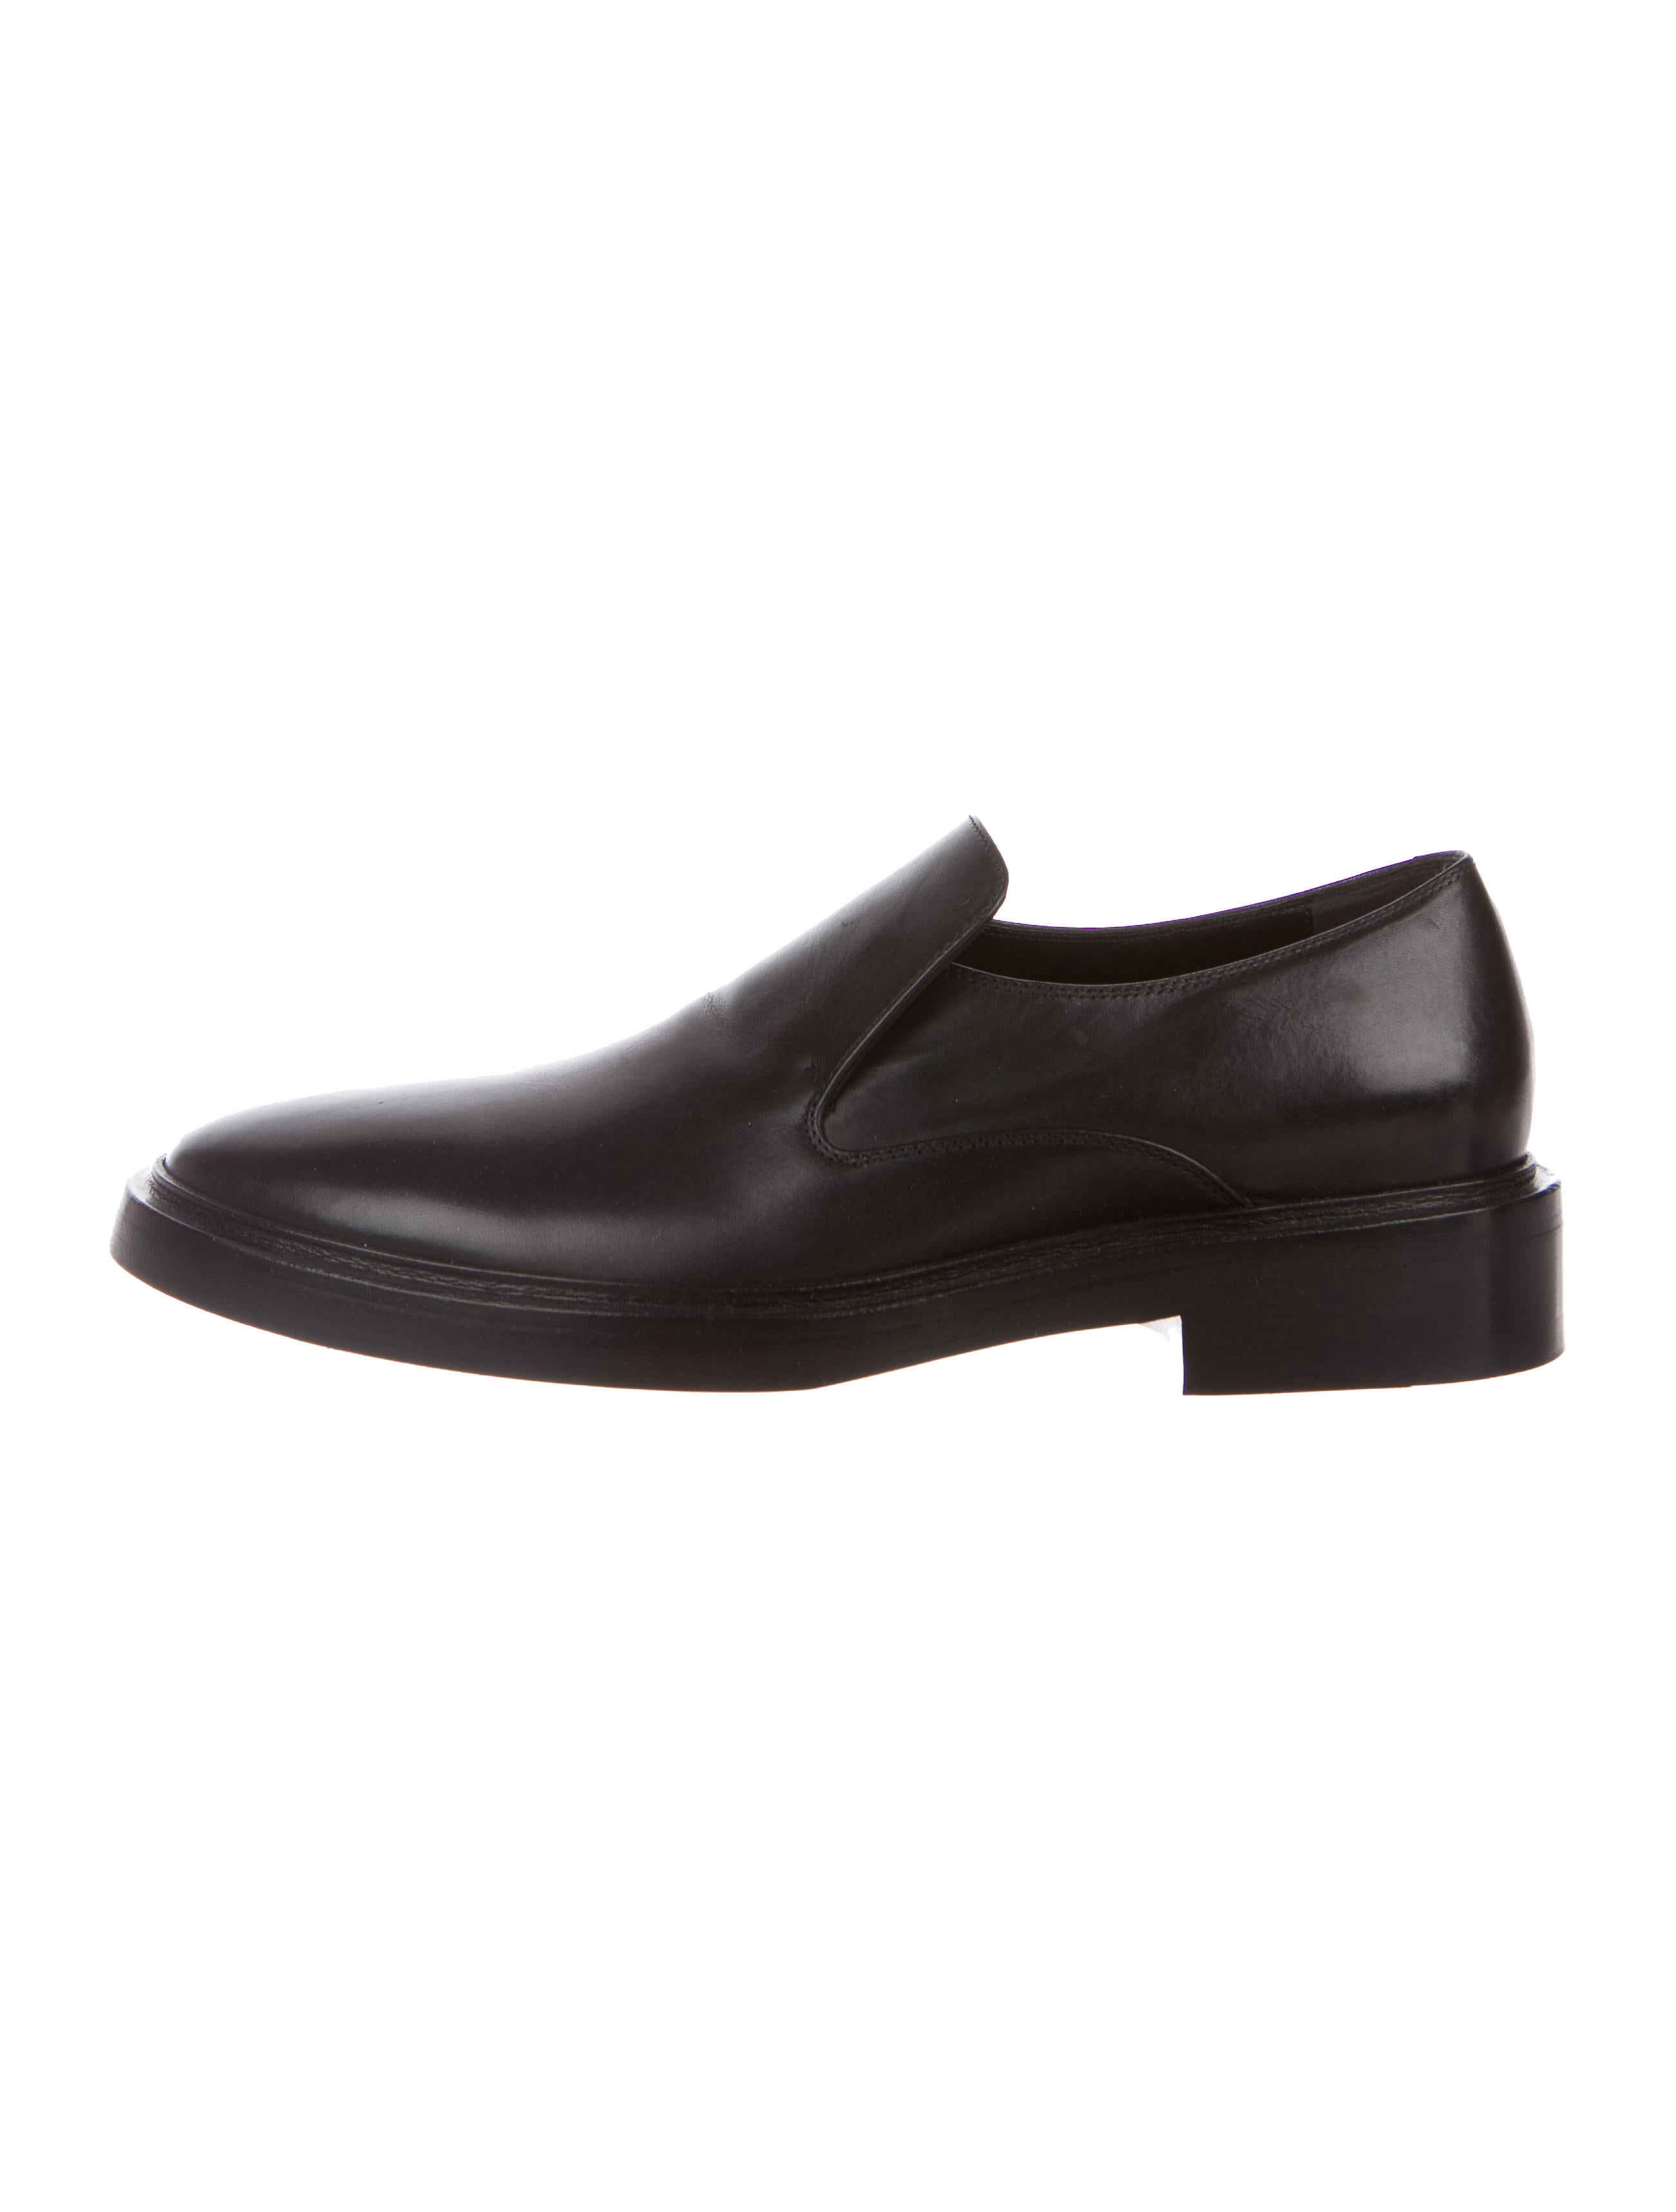 outlet where to buy clearance footlocker pictures Balenciaga Leather Round-Toe Loafers cheap price wholesale 4WeAr